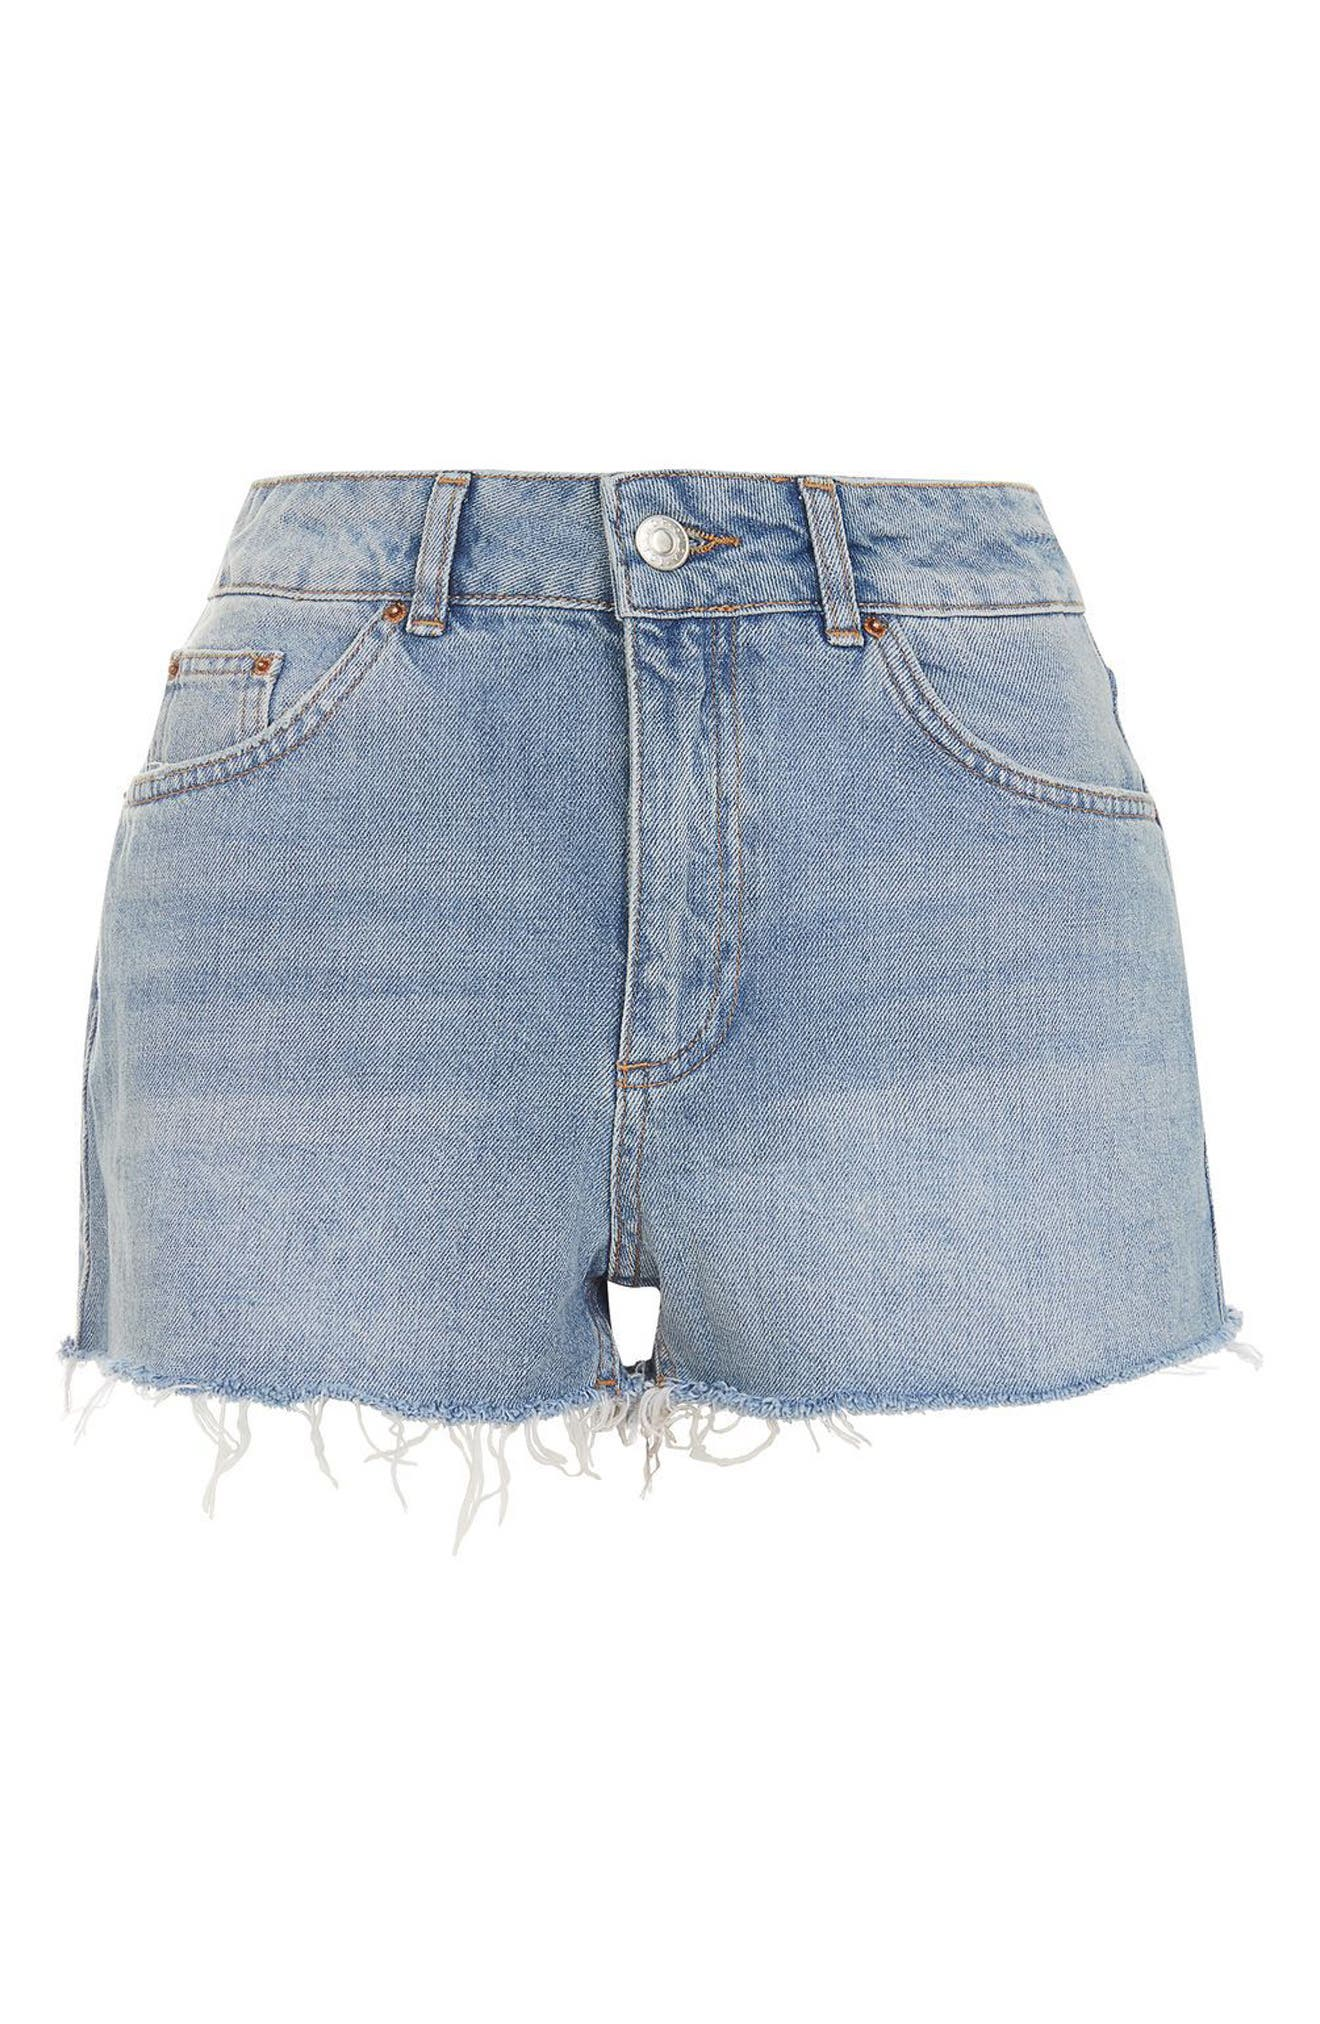 Alternate Image 3  - Topshop Longline Denim Mom Shorts (Petite)